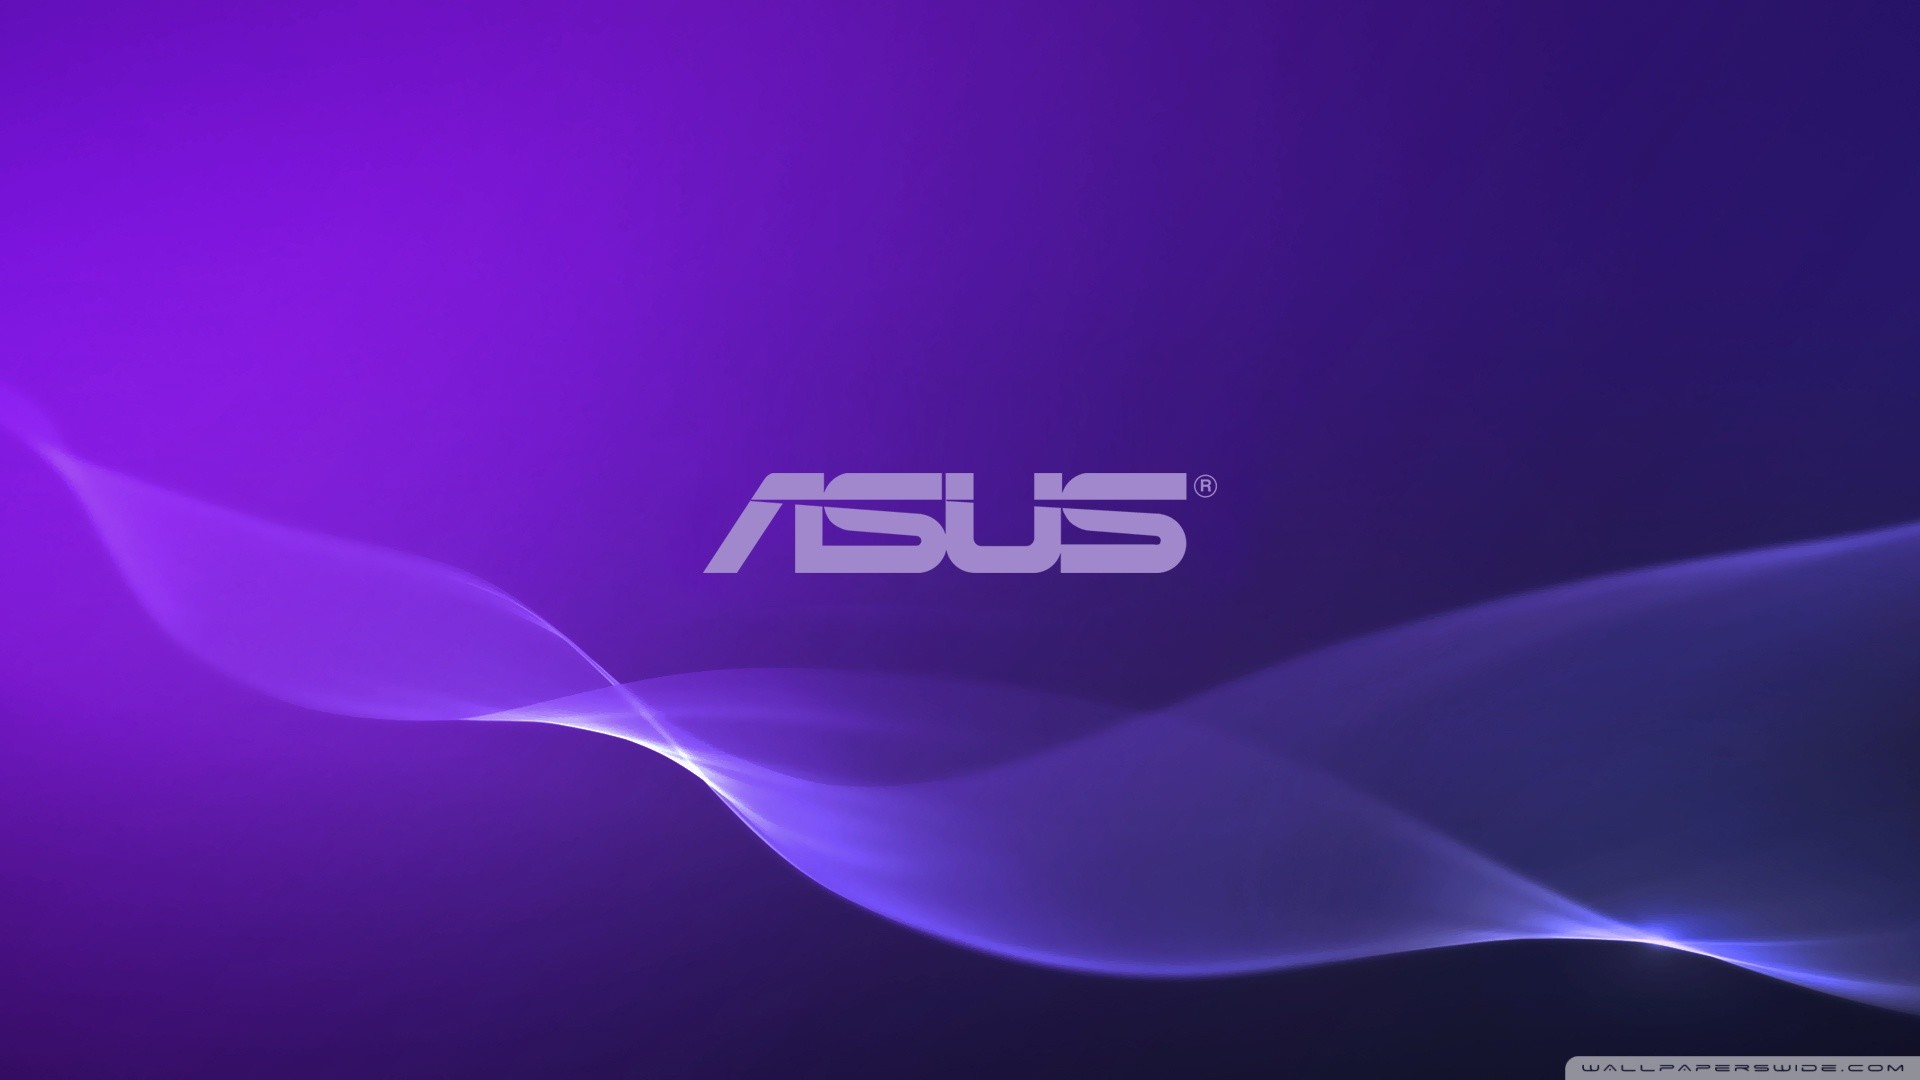 Asus Wallpaper Full Hd: Asus Wallpapers HD (78+ Background Pictures